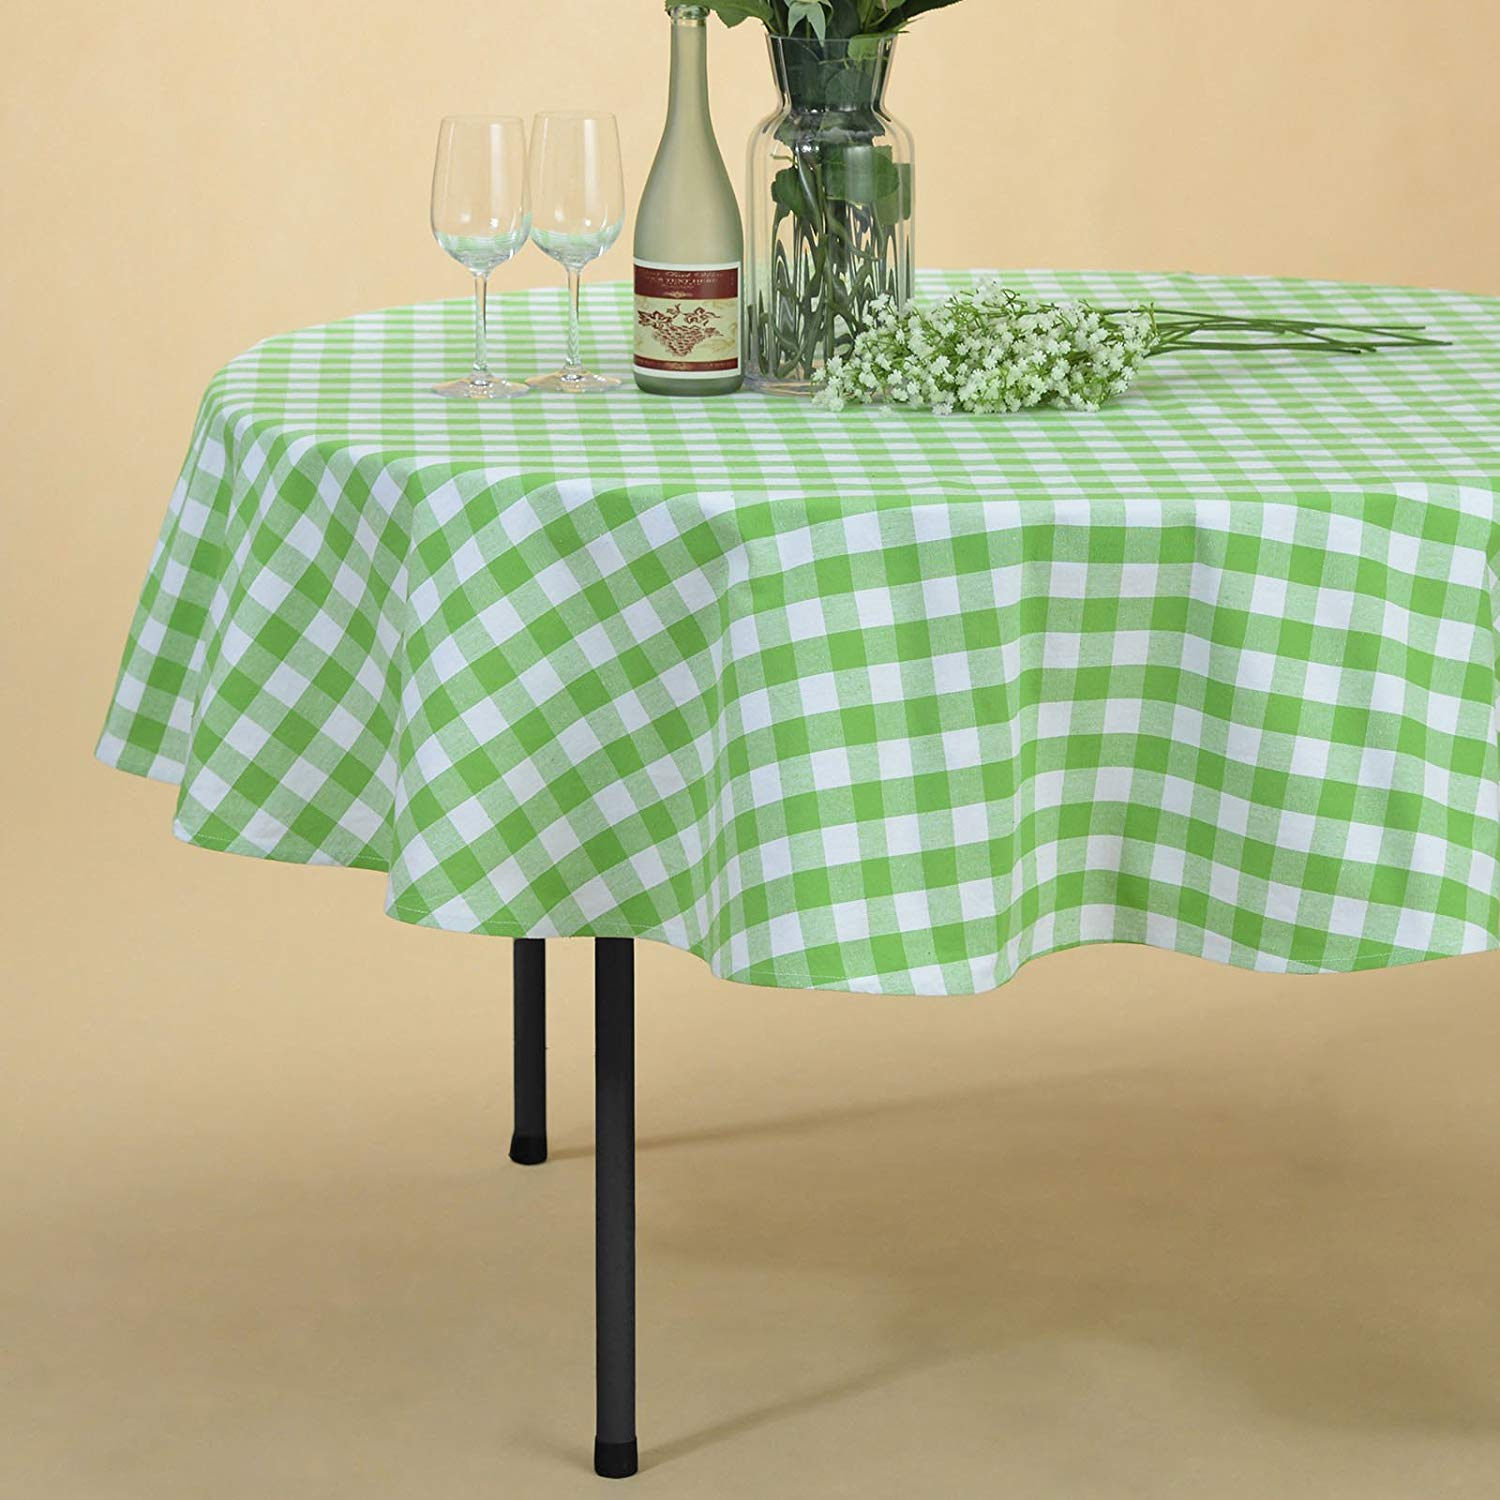 veeyoo plaid check tablecloth gingham cotton for round accent home kitchen party indoor outdoor use inch seats people battery standard lamp glass and gold coffee table dining set